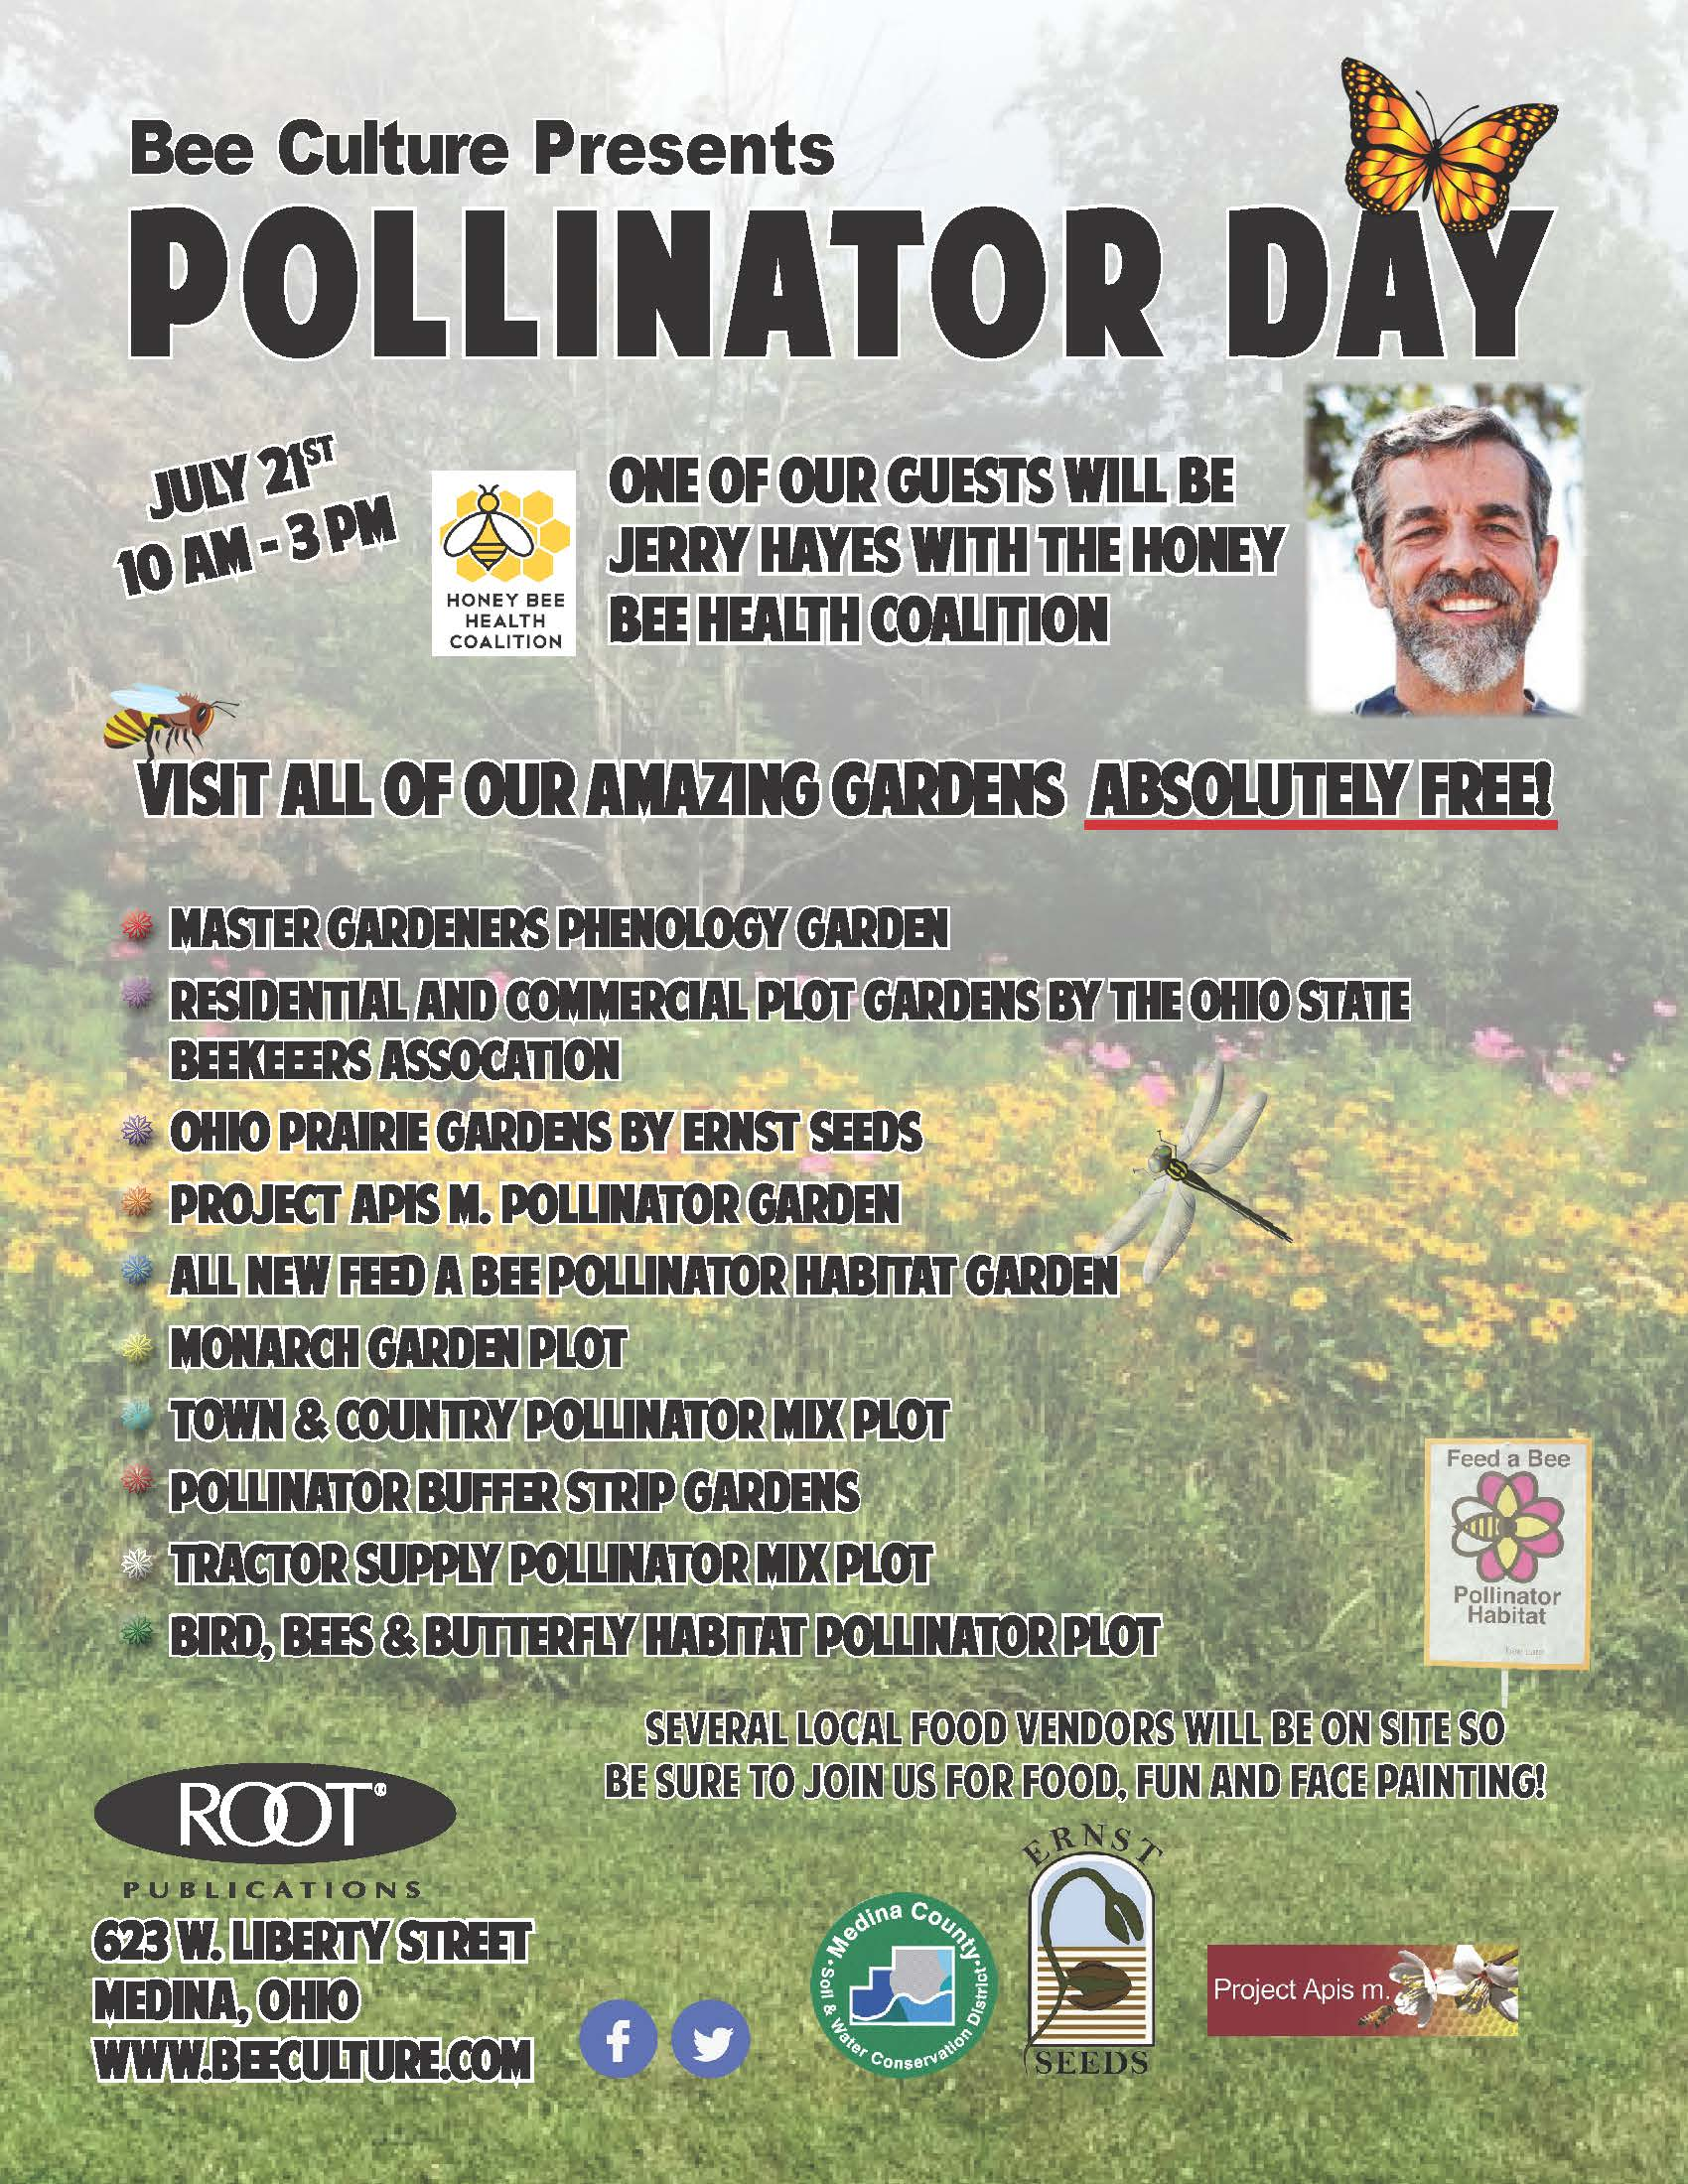 CATCH THE BUZZ – BEE CULTURE'S POLLINATOR DAY 2018